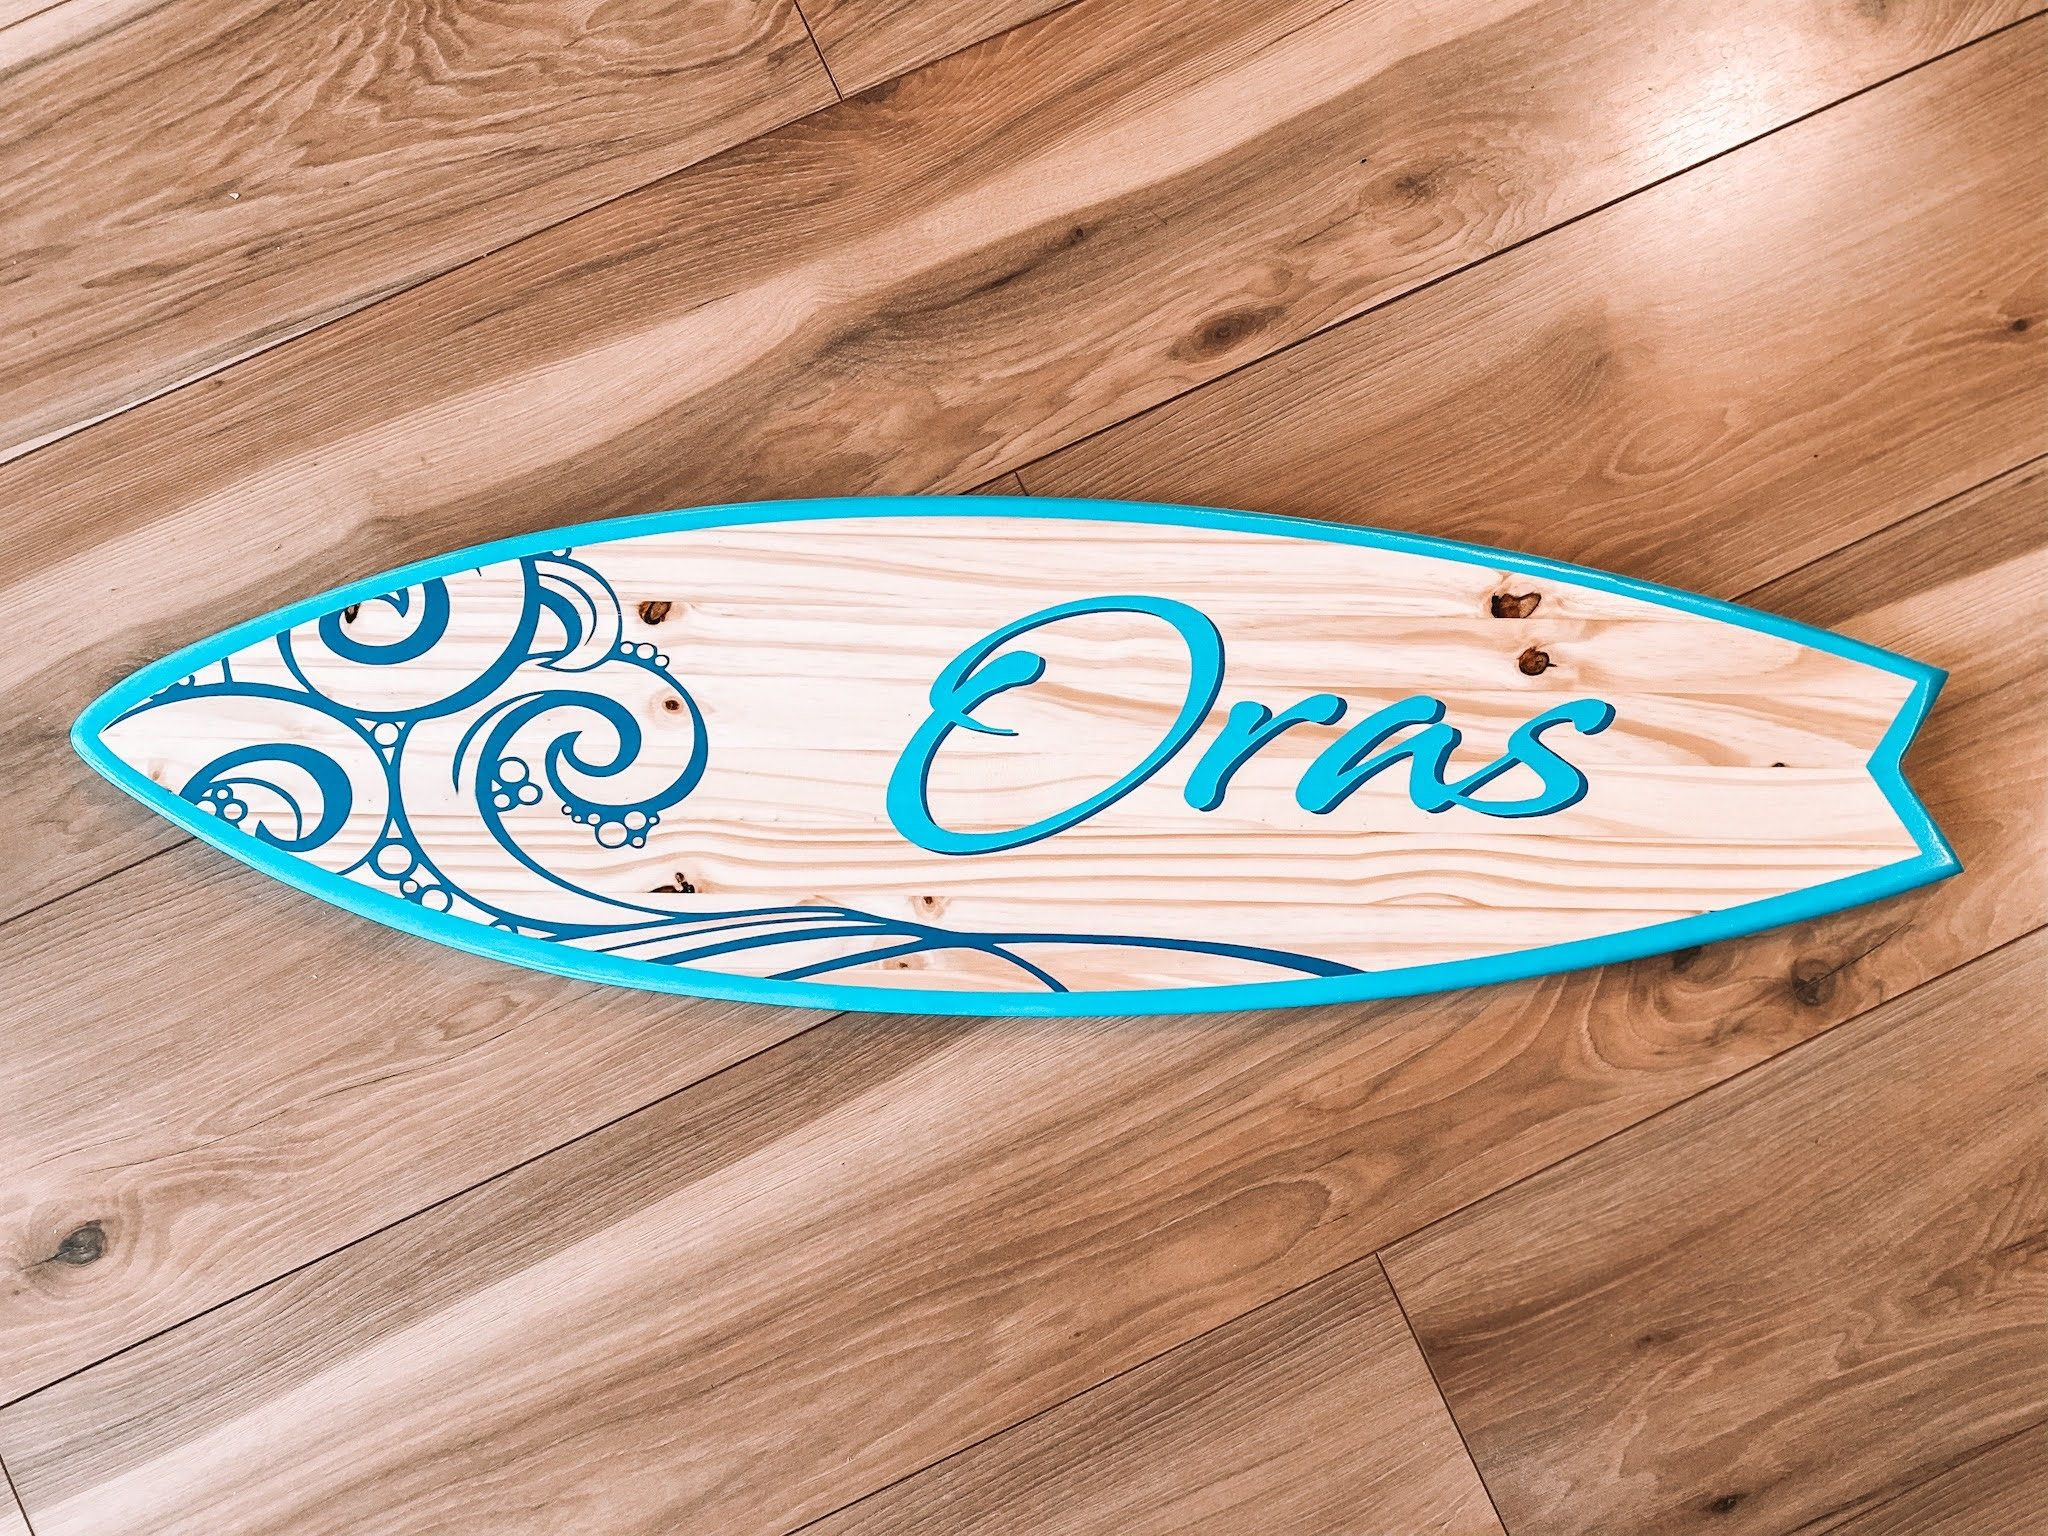 Personalized Surfboard Wall Art Surf Decor Surfboard Sign Surfboard Wall Art Surf Art Personalized Name Surfboard Signs In 2021 Surfboard Wall Art Surfboard Wall Surf Decor